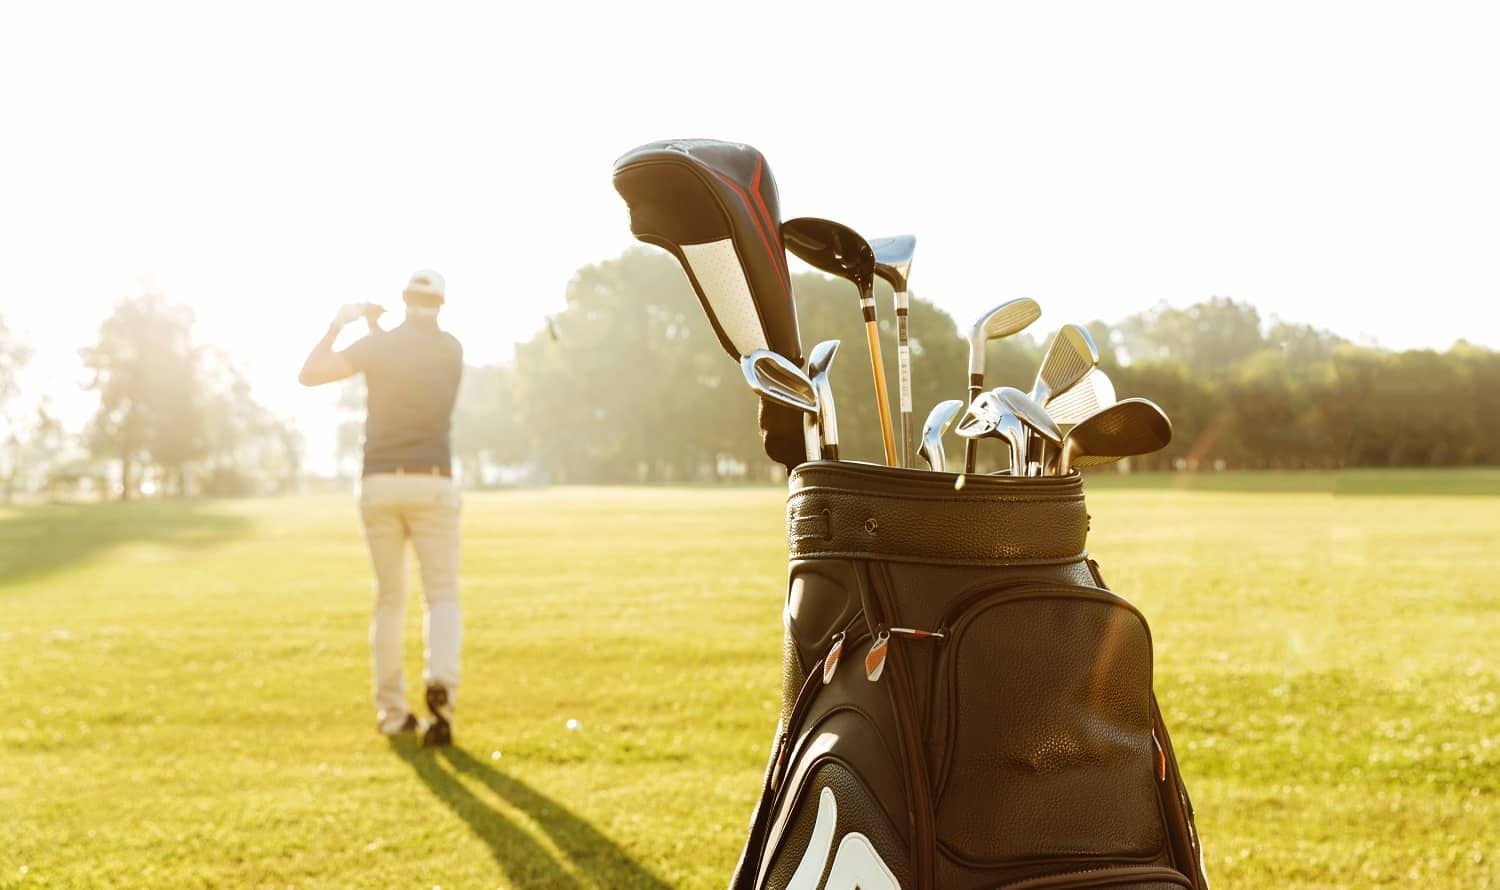 Back view of a male golfer swinging golf club and following shot in the air